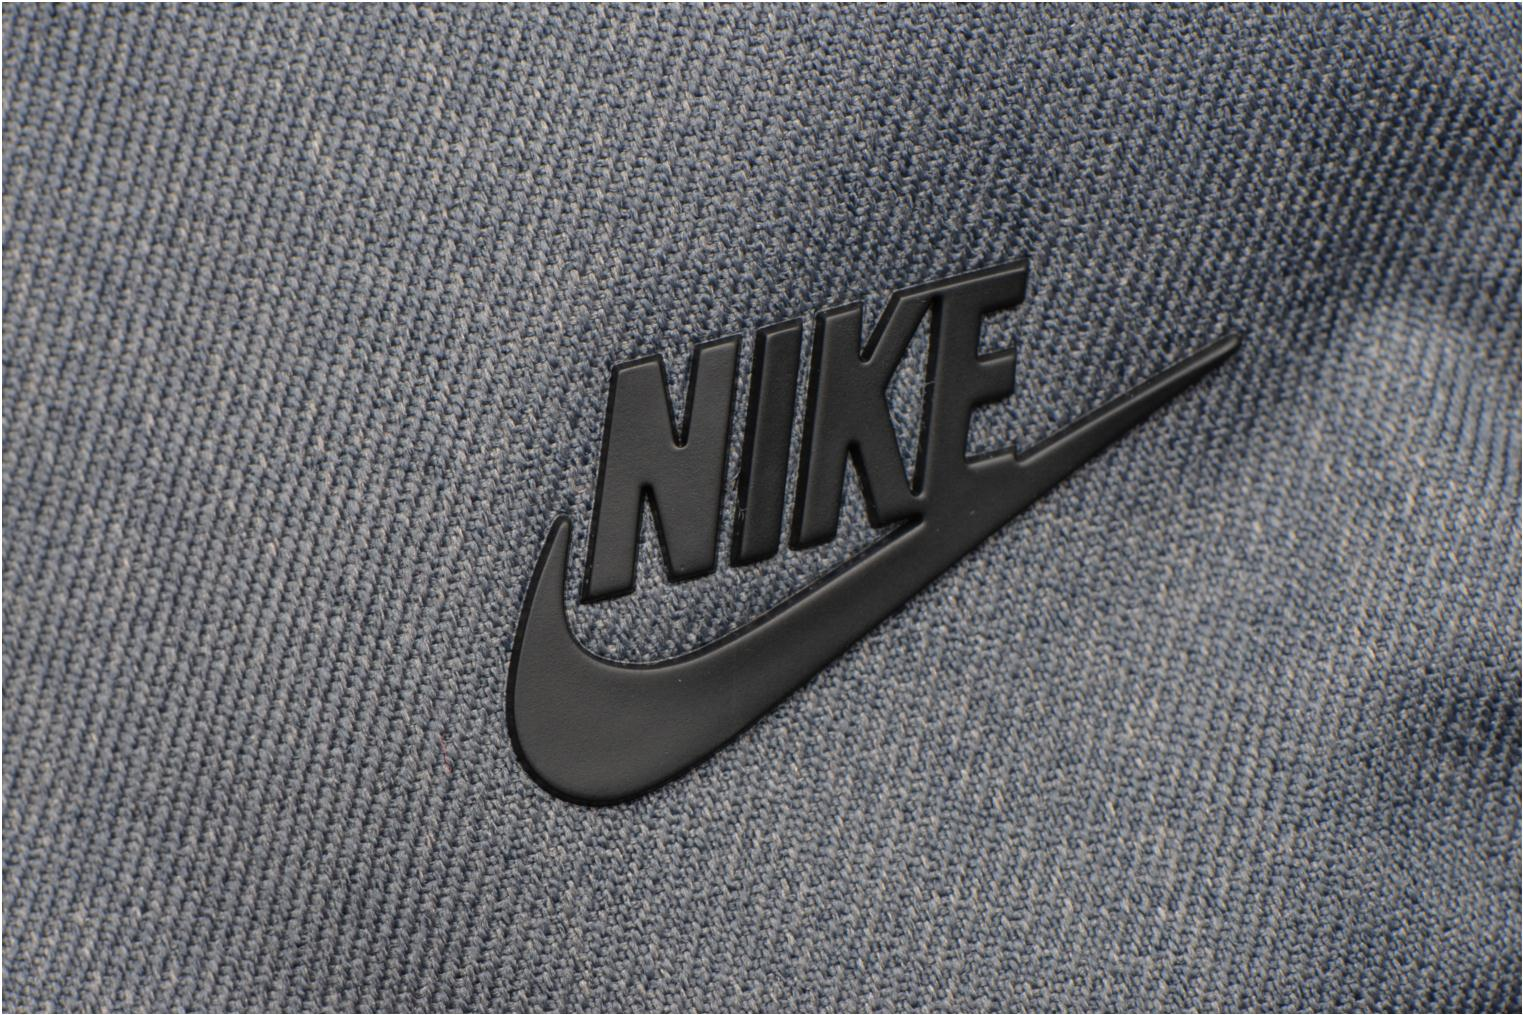 Nike Tech Small Items Bag Dark greyblackblack